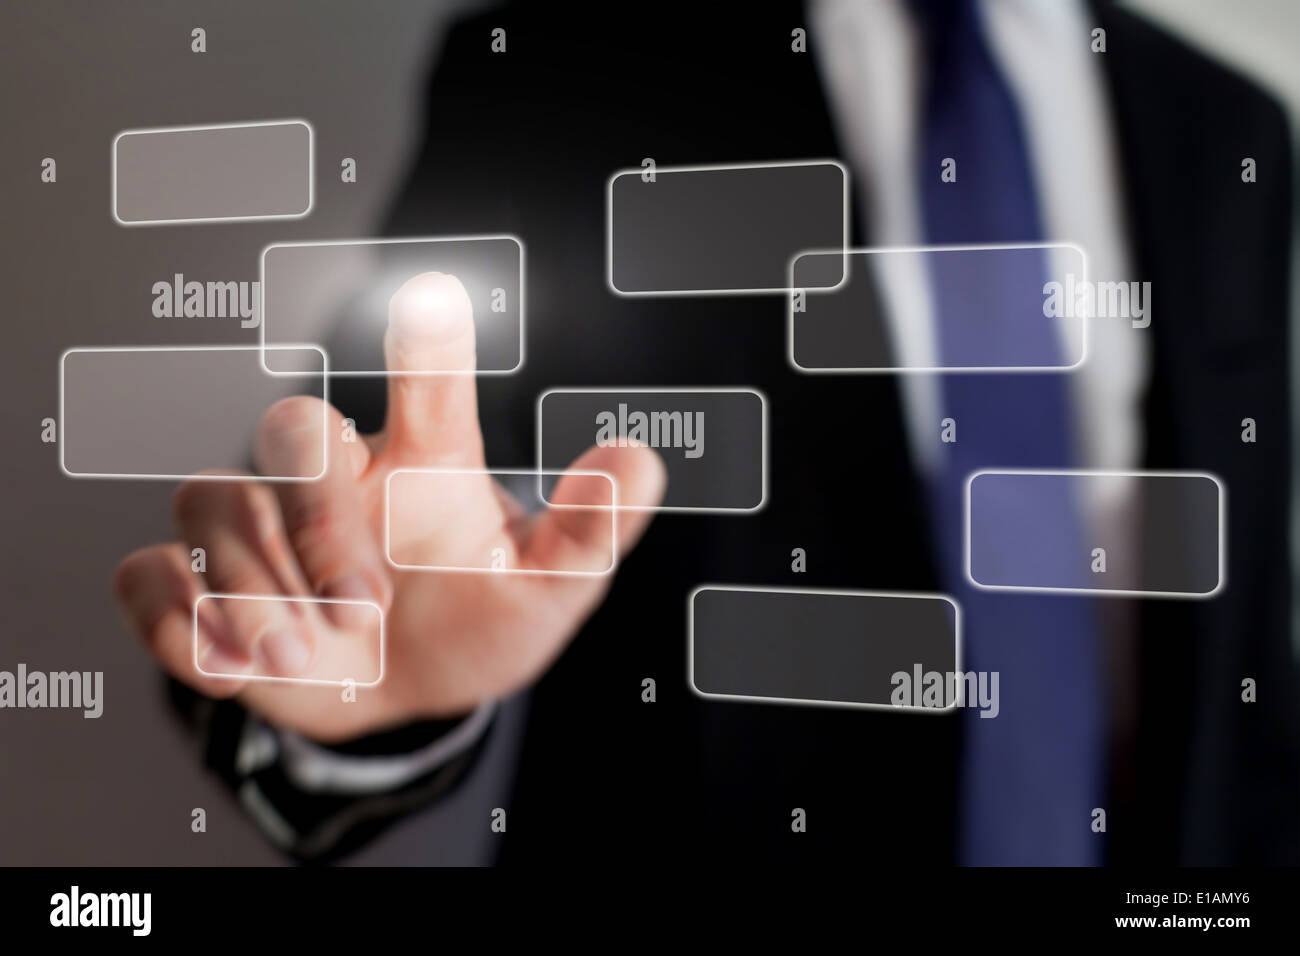 touch screen interface technology - Stock Image